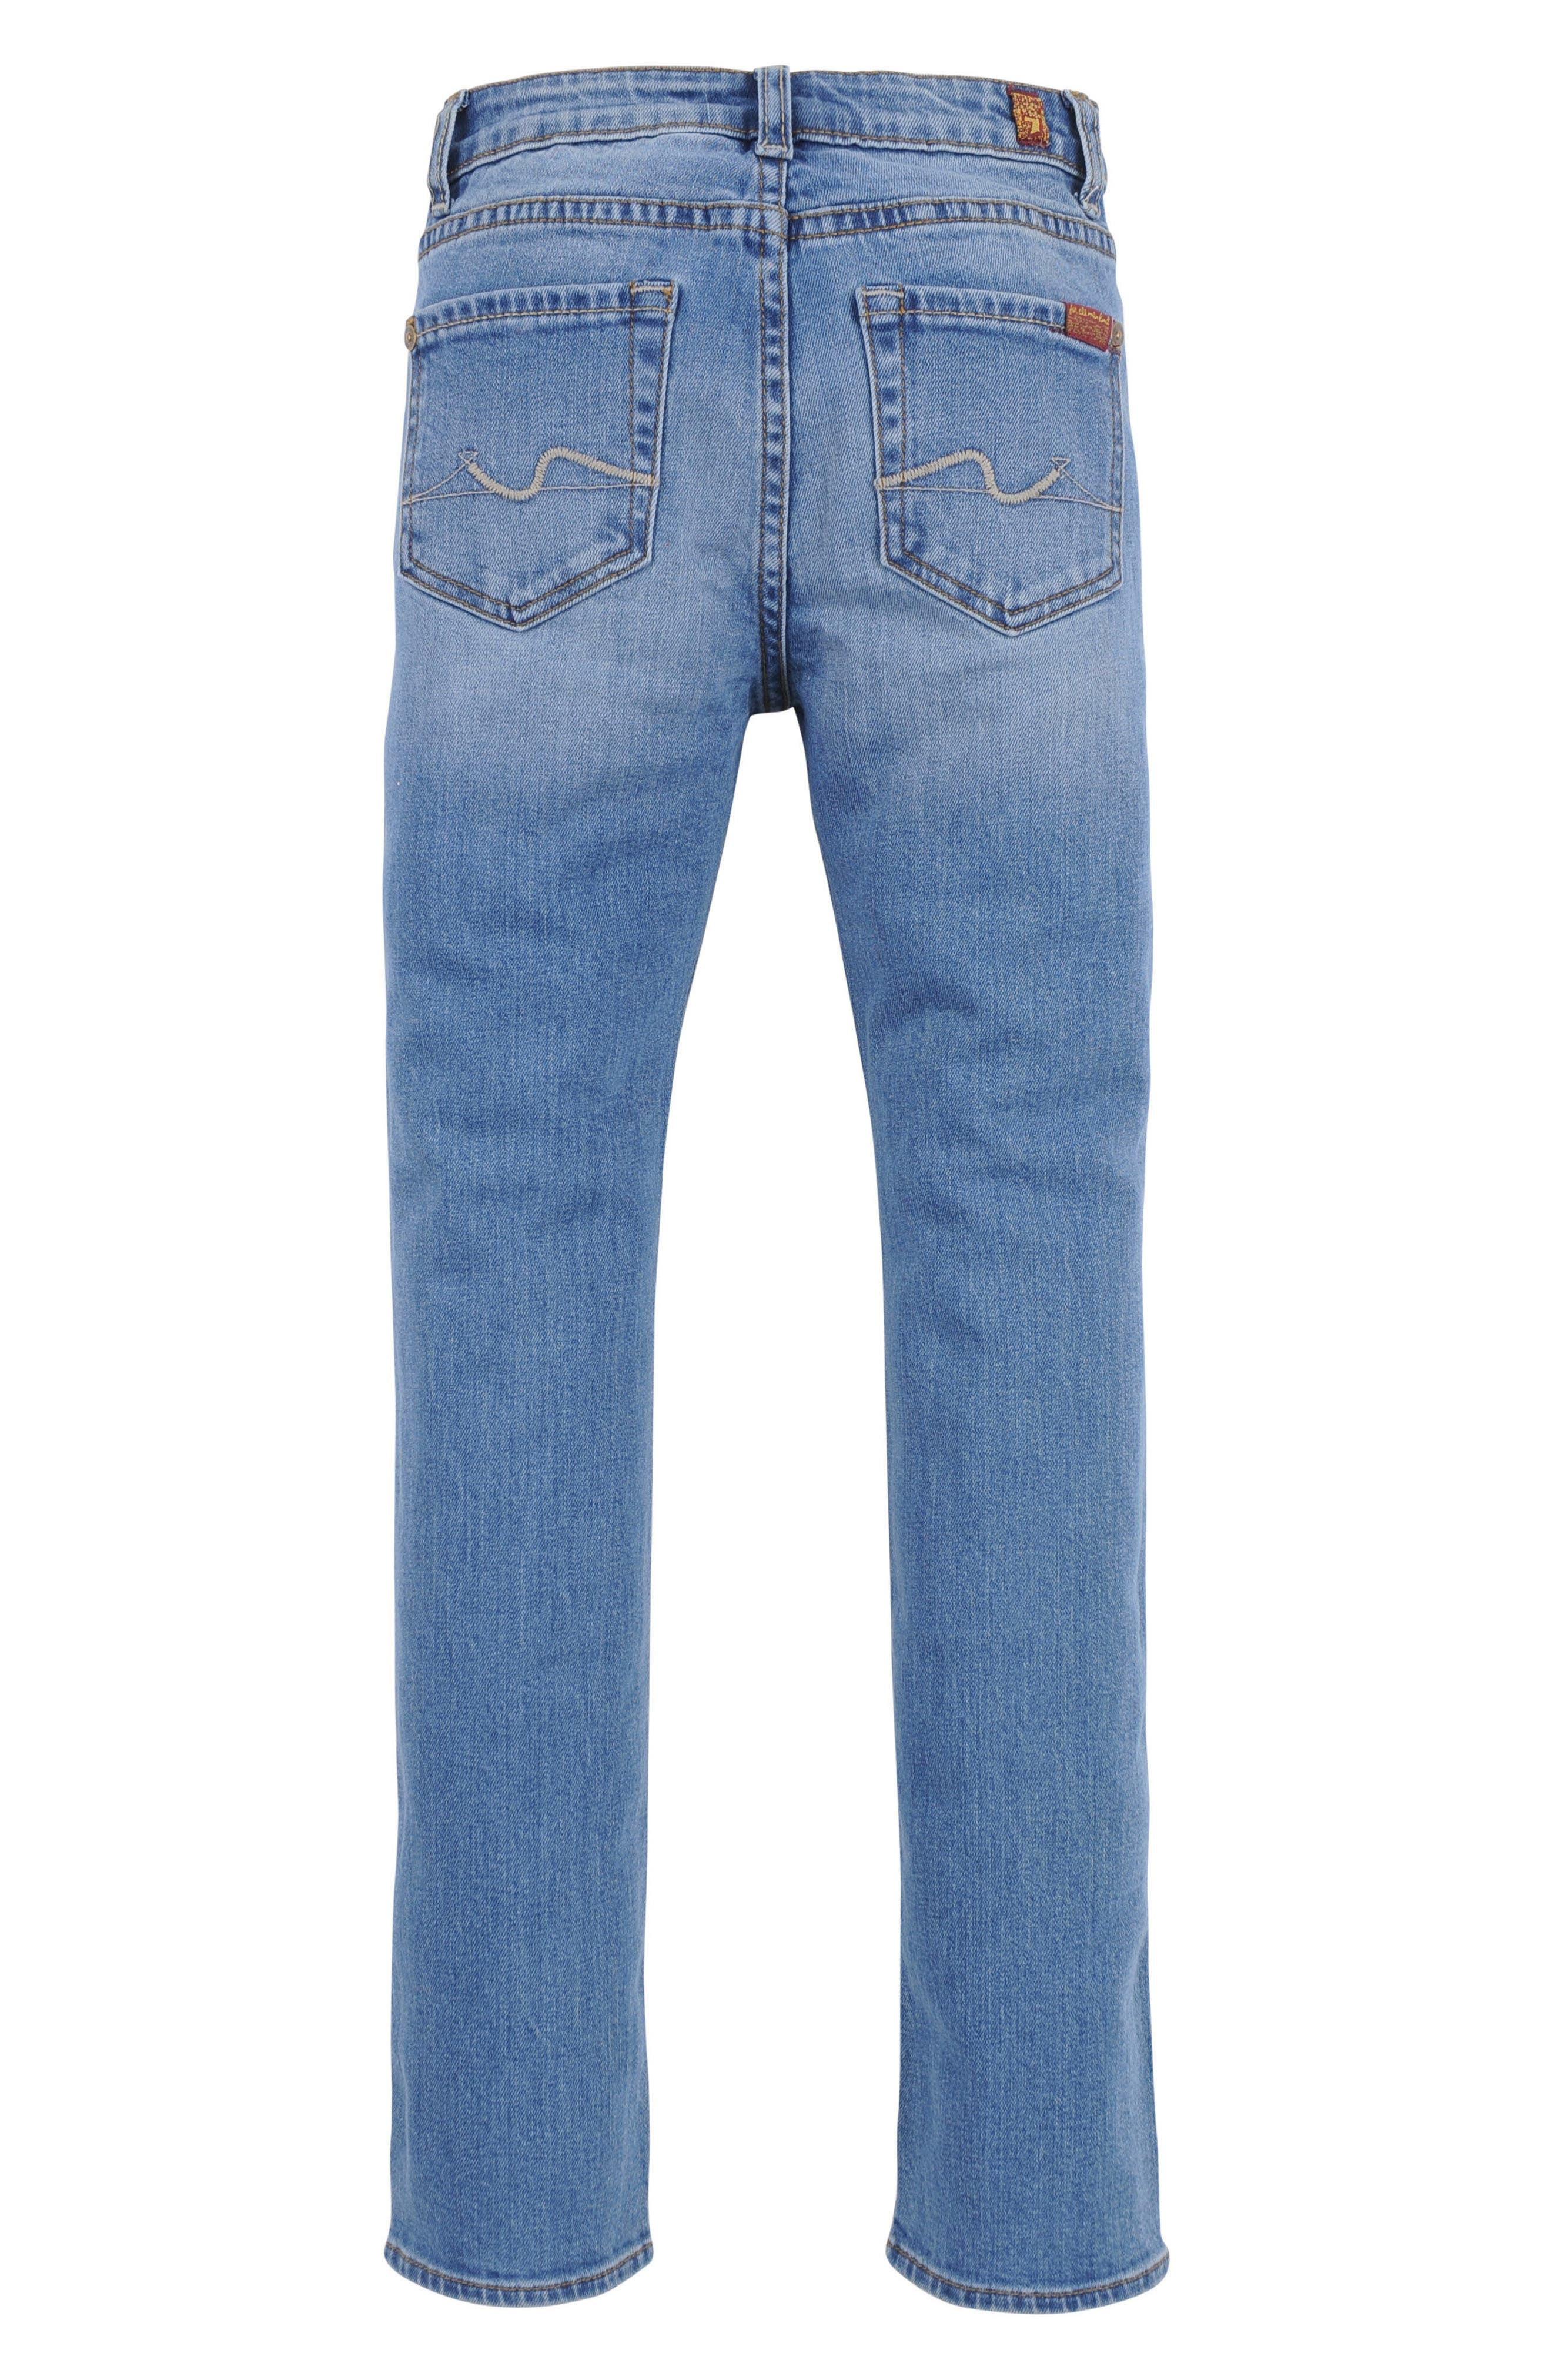 Slimmy Foolproof Jeans,                             Alternate thumbnail 2, color,                             Solace